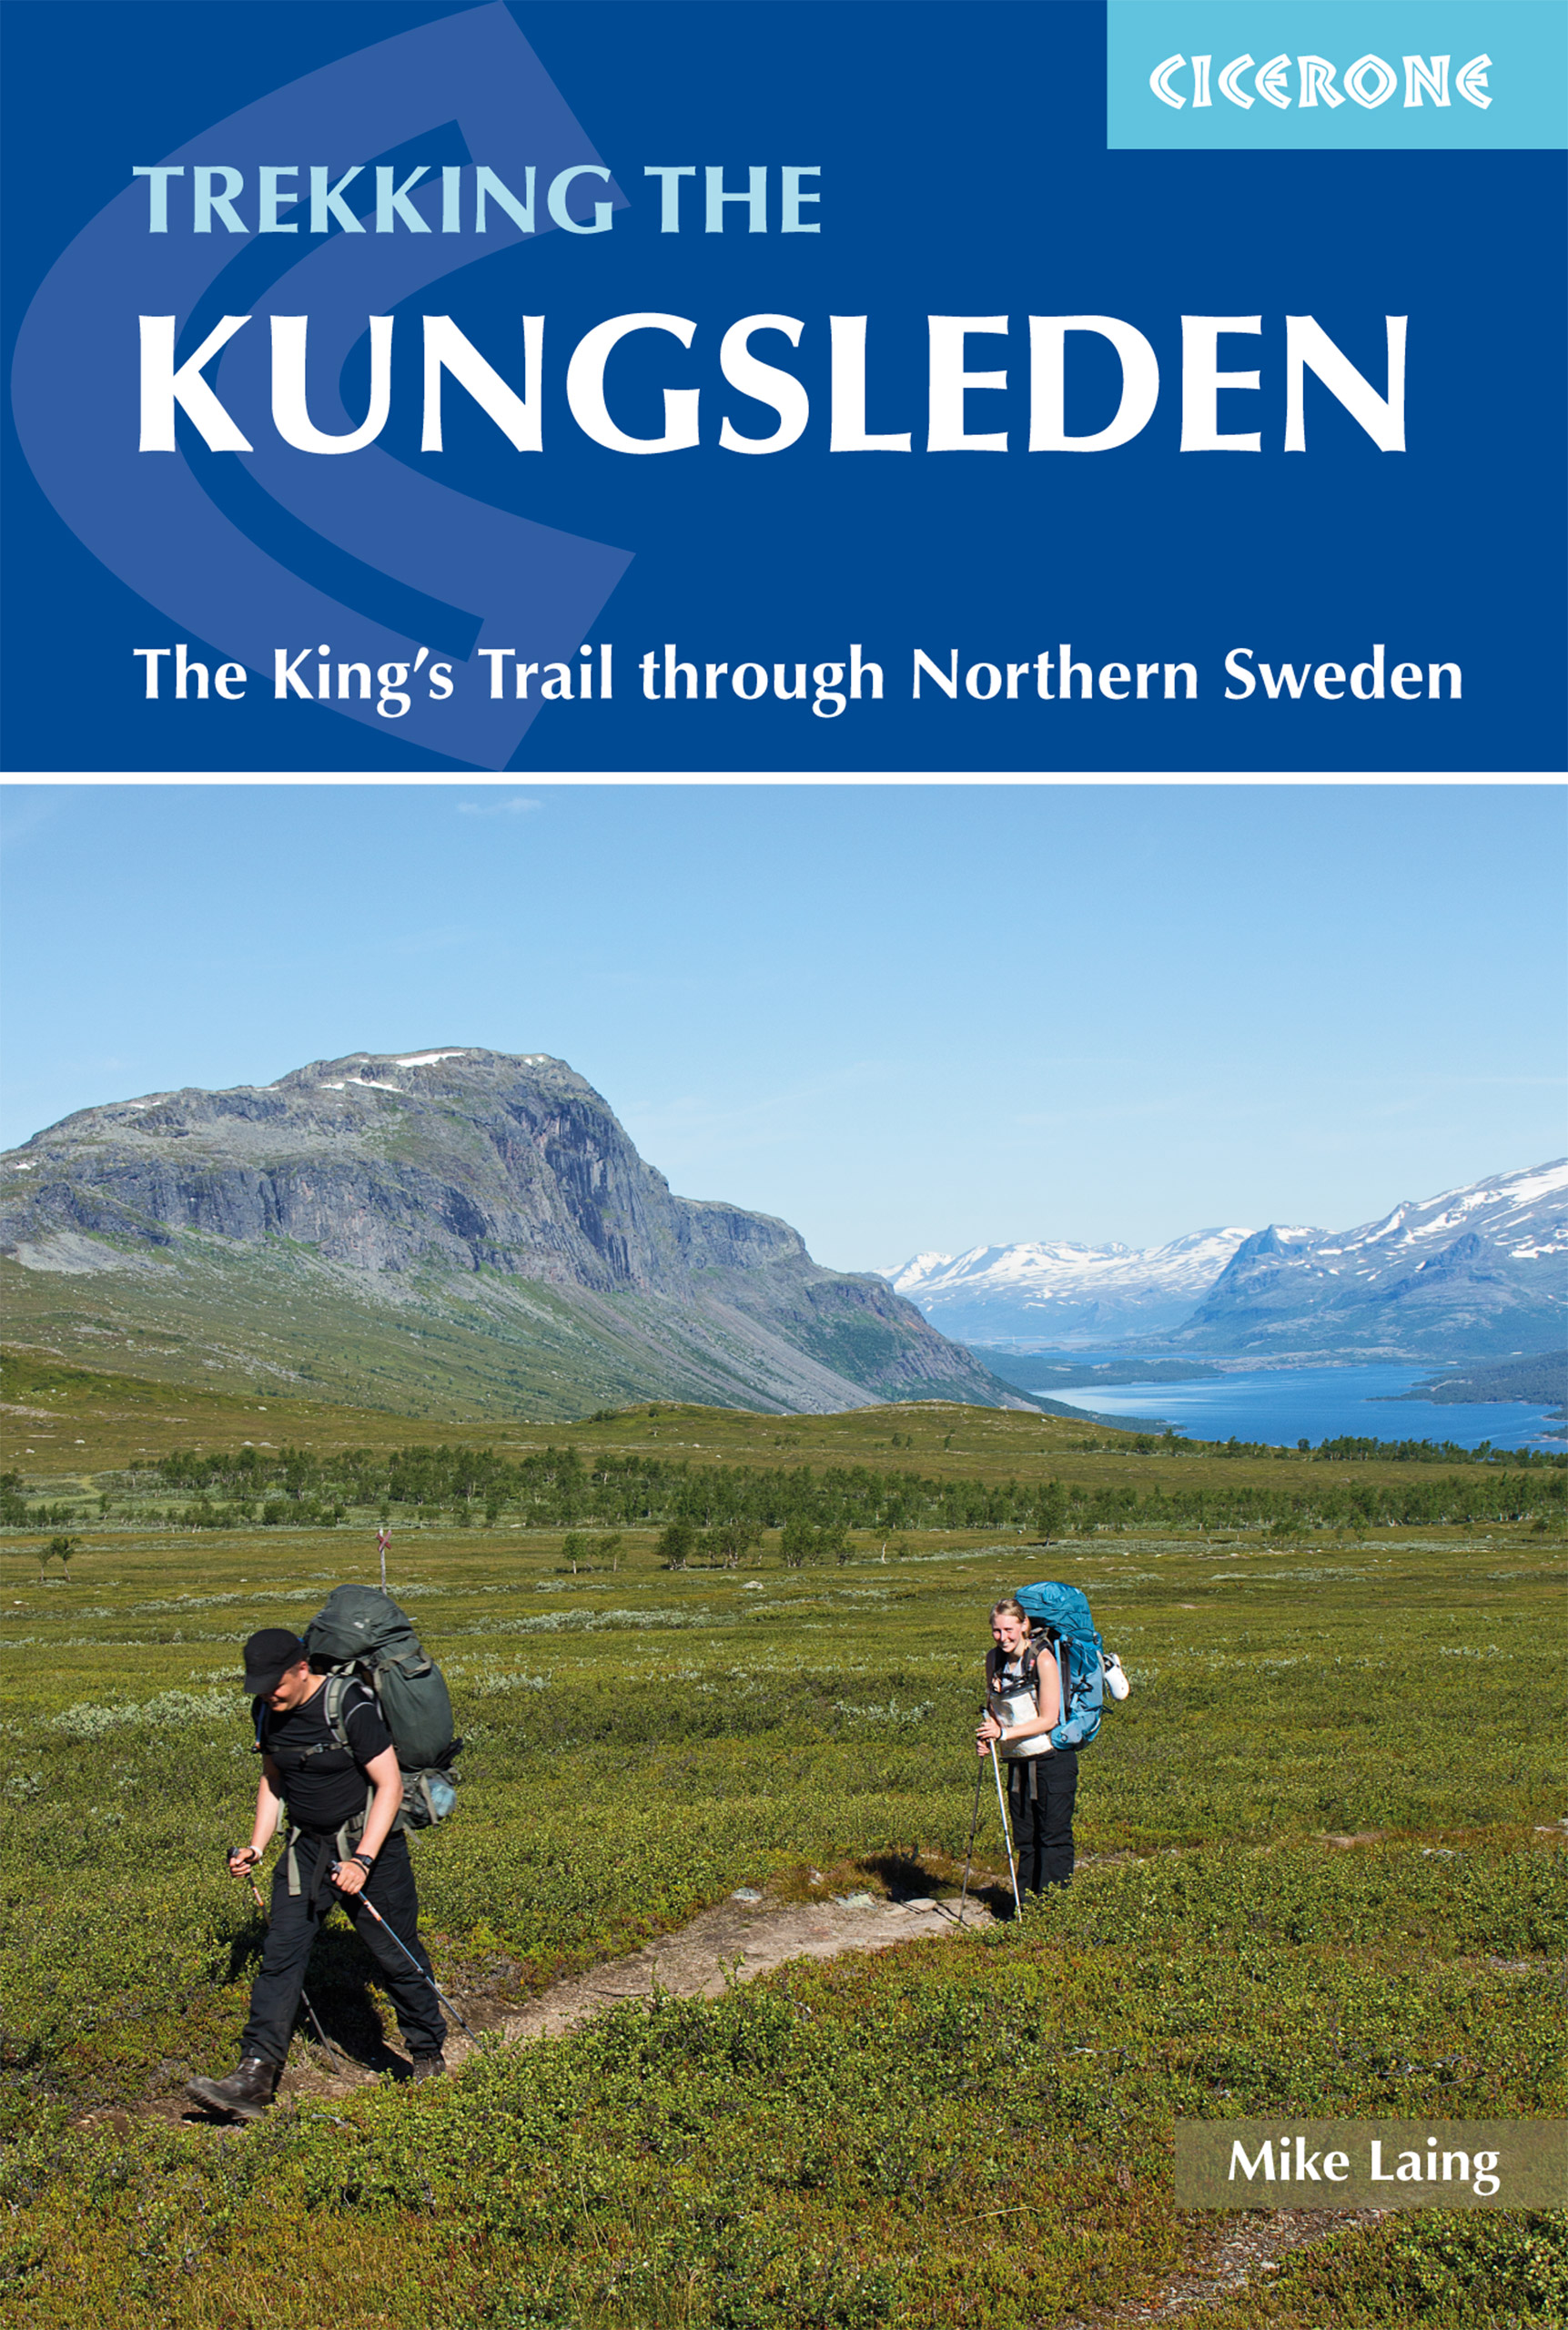 The Kungsleden - Walking Sweden's Royal Trail